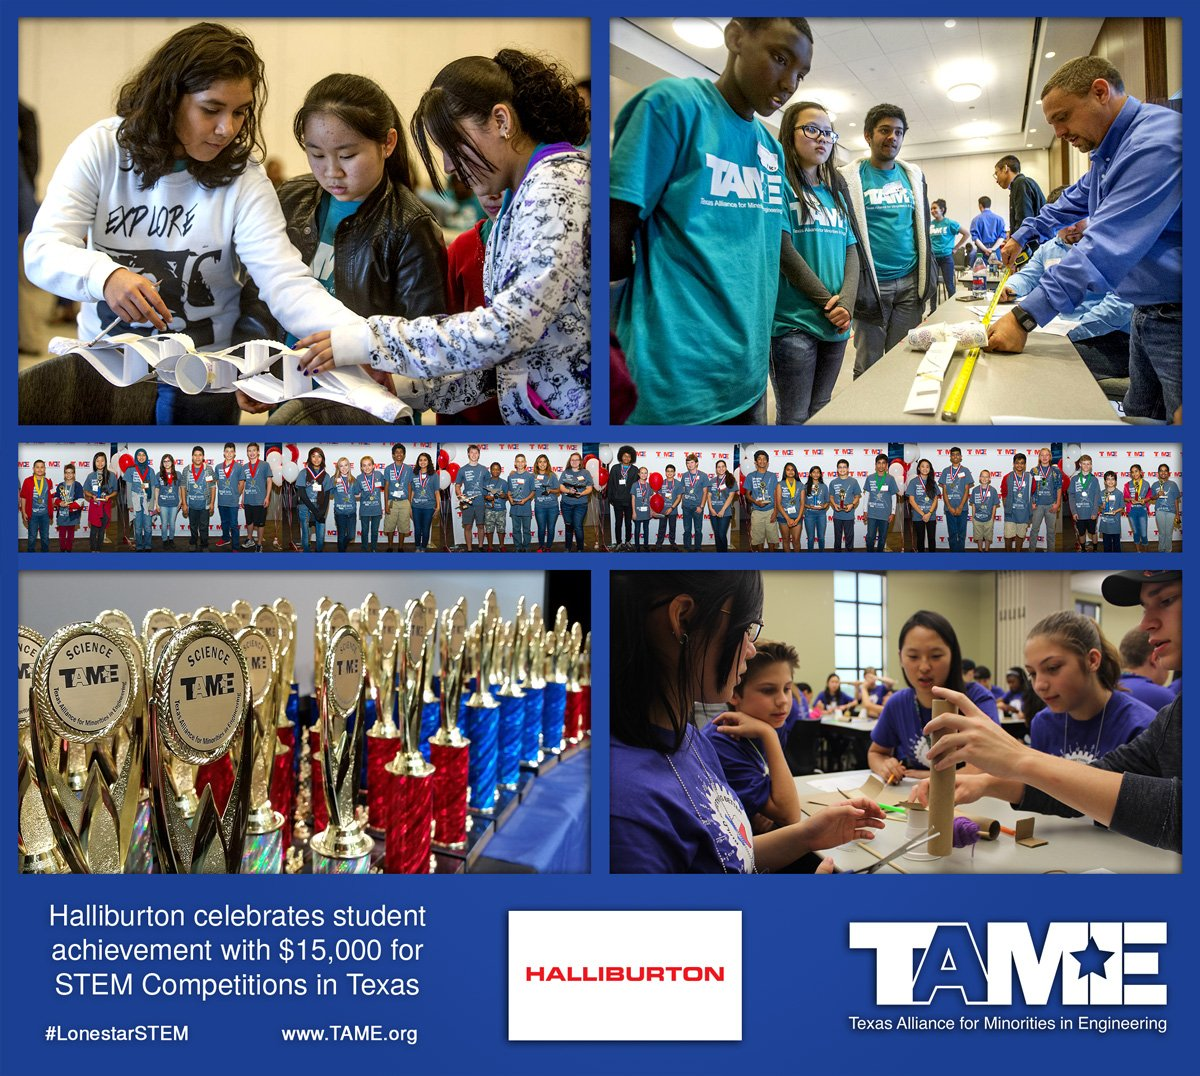 The Texas Alliance for Minorities in Engineering (TAME) is pleased to announce that partner Halliburton has generously awarded $15,000 to empower Texan students to pursue careers in science, technology, engineering and math. The funding will support annual STEM Competitions, which celebrate achievement in math, science, and engineering. Students and chaperones pay no fee to participate thanks to sponsorships like this.